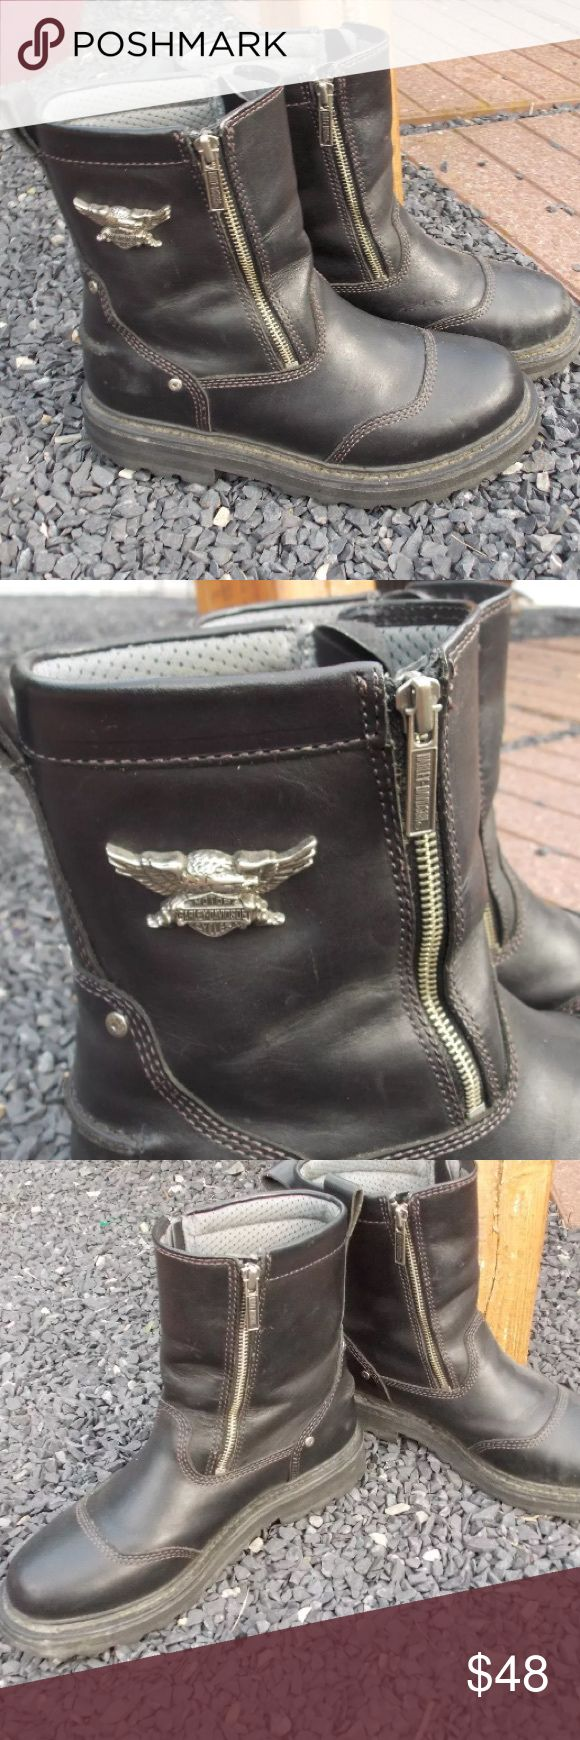 Harley Davidson Mens Motorcycle Riding Boots 9 Size 9. Some minor scuffs as to be expected from riding. Still a ton of life left in these. Be sure to view the other items in our closet. We offer  women's, Mens and kids items in a variety of sizes. Bundle and save!! Thank you for viewing our item!! Harley-Davidson Shoes Boots